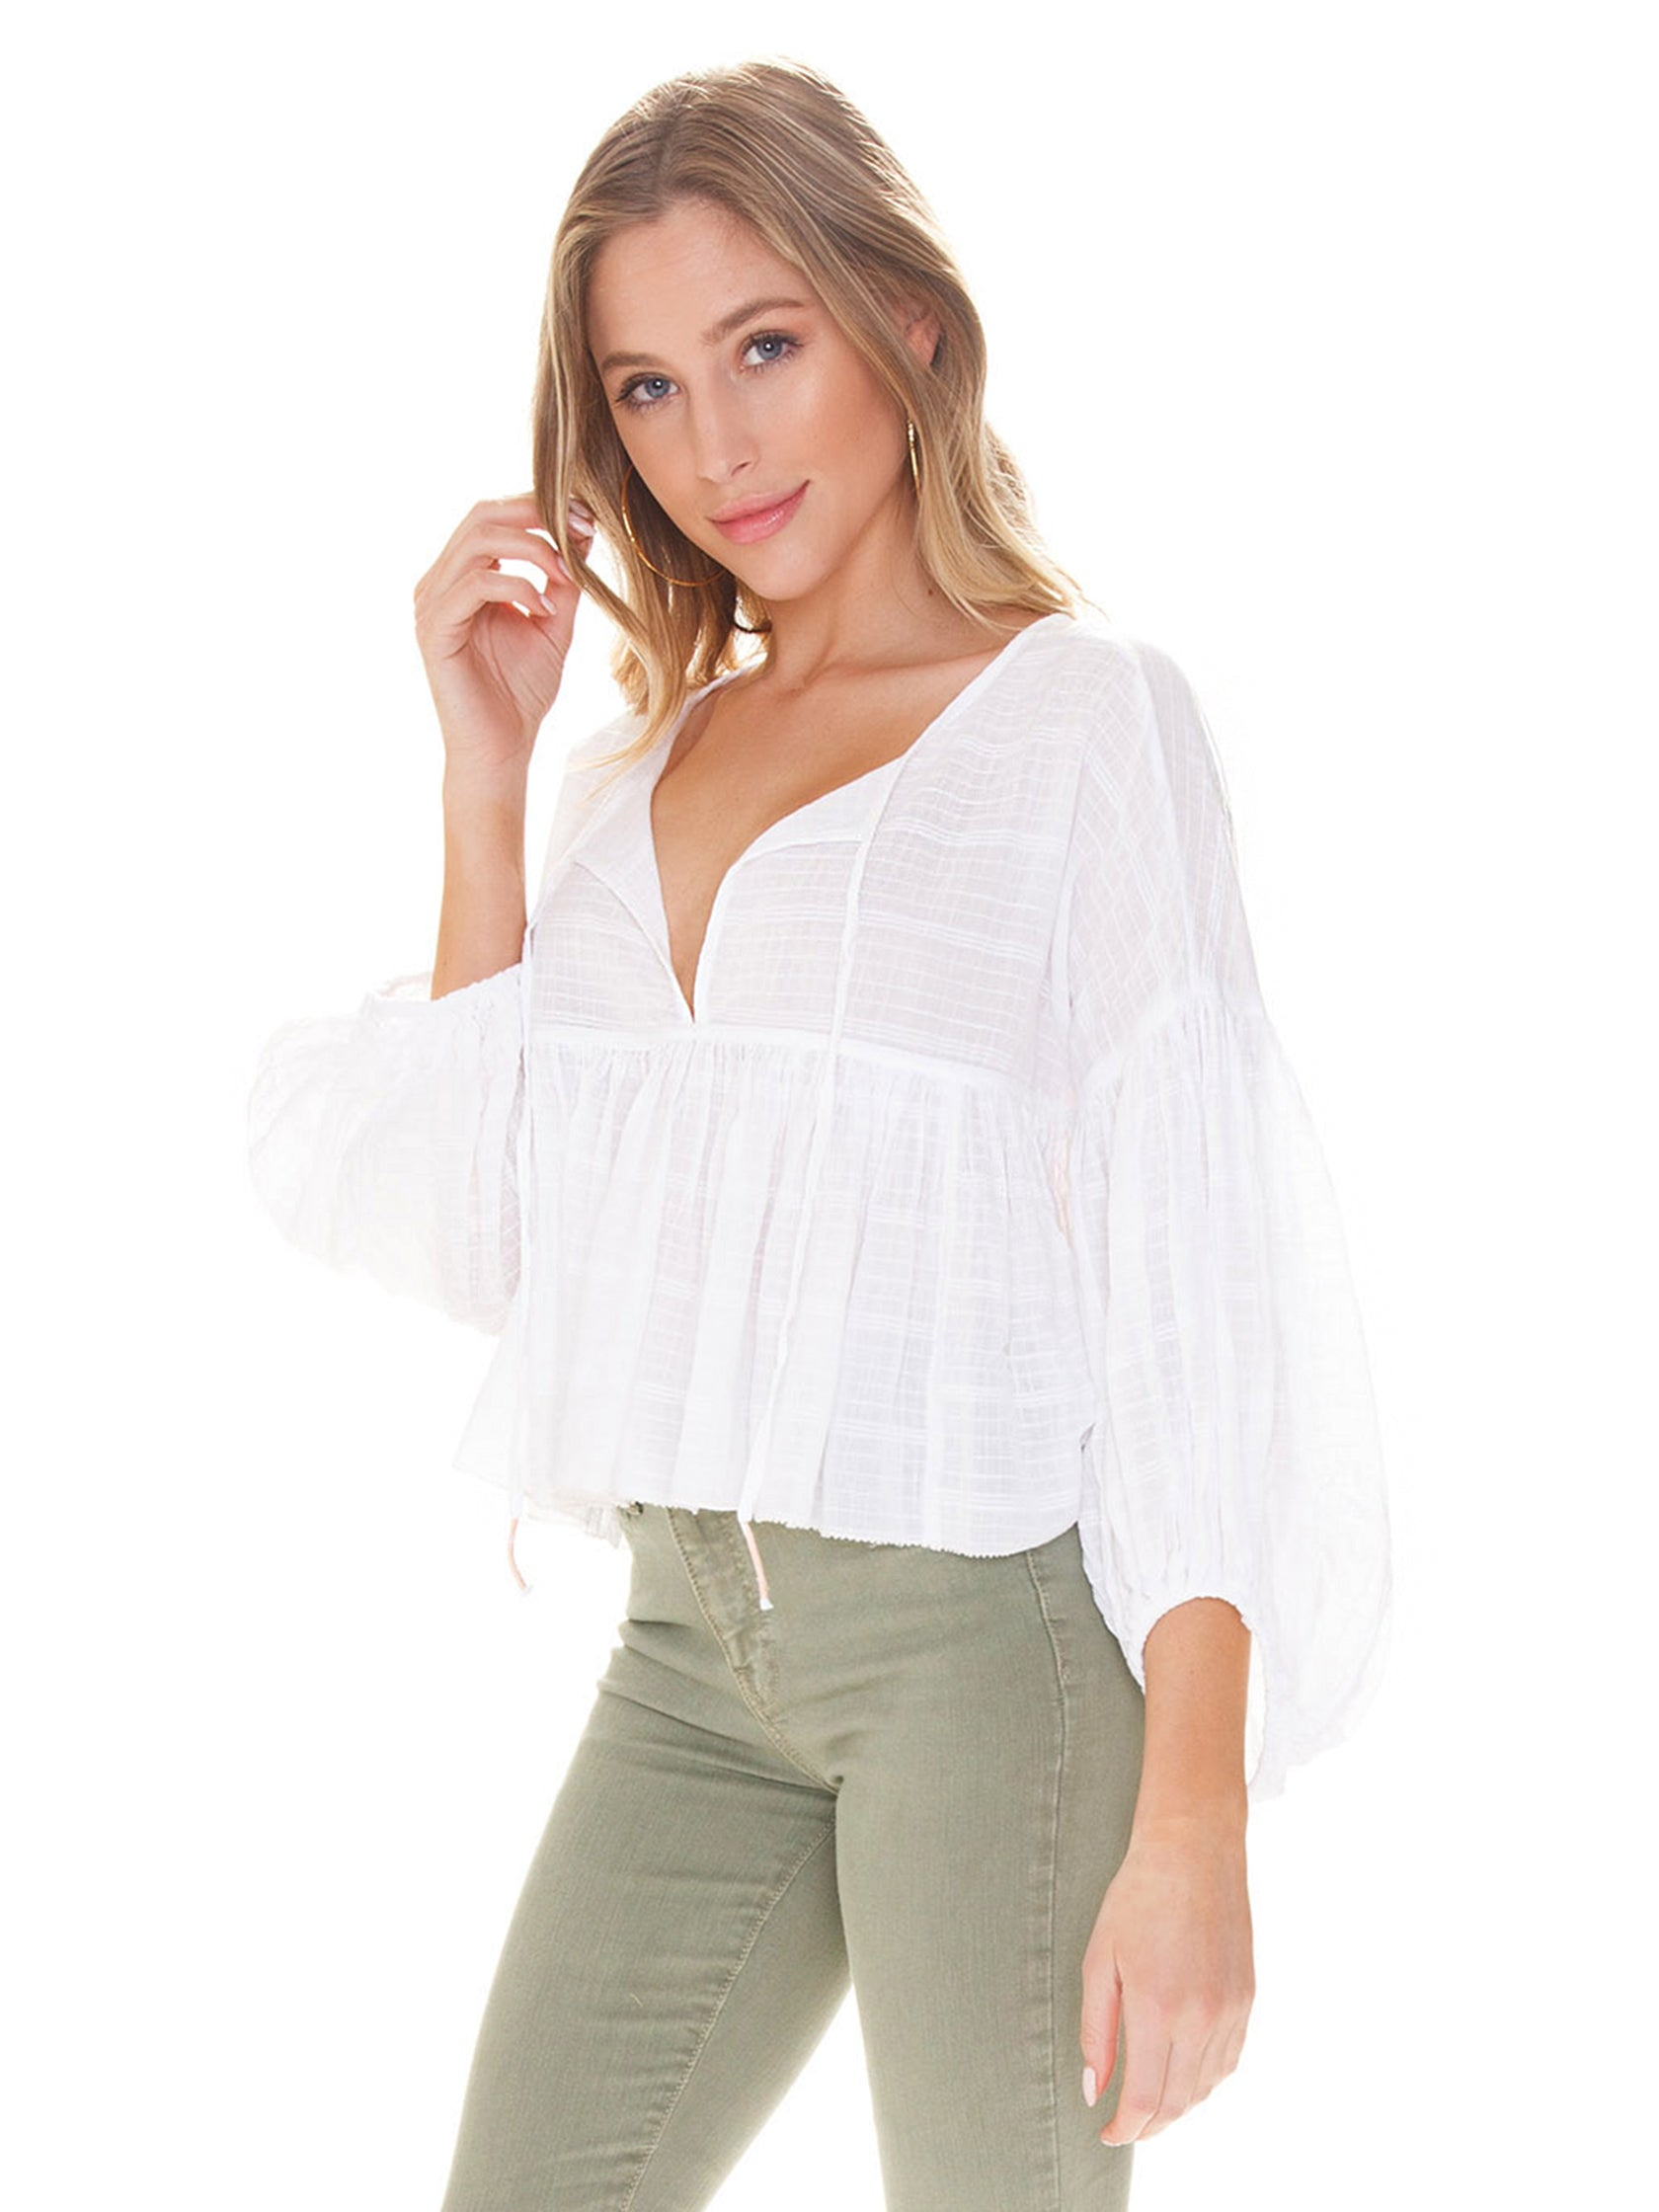 Women wearing a top rental from Free People called Beaumont Mews Stripe Blouse